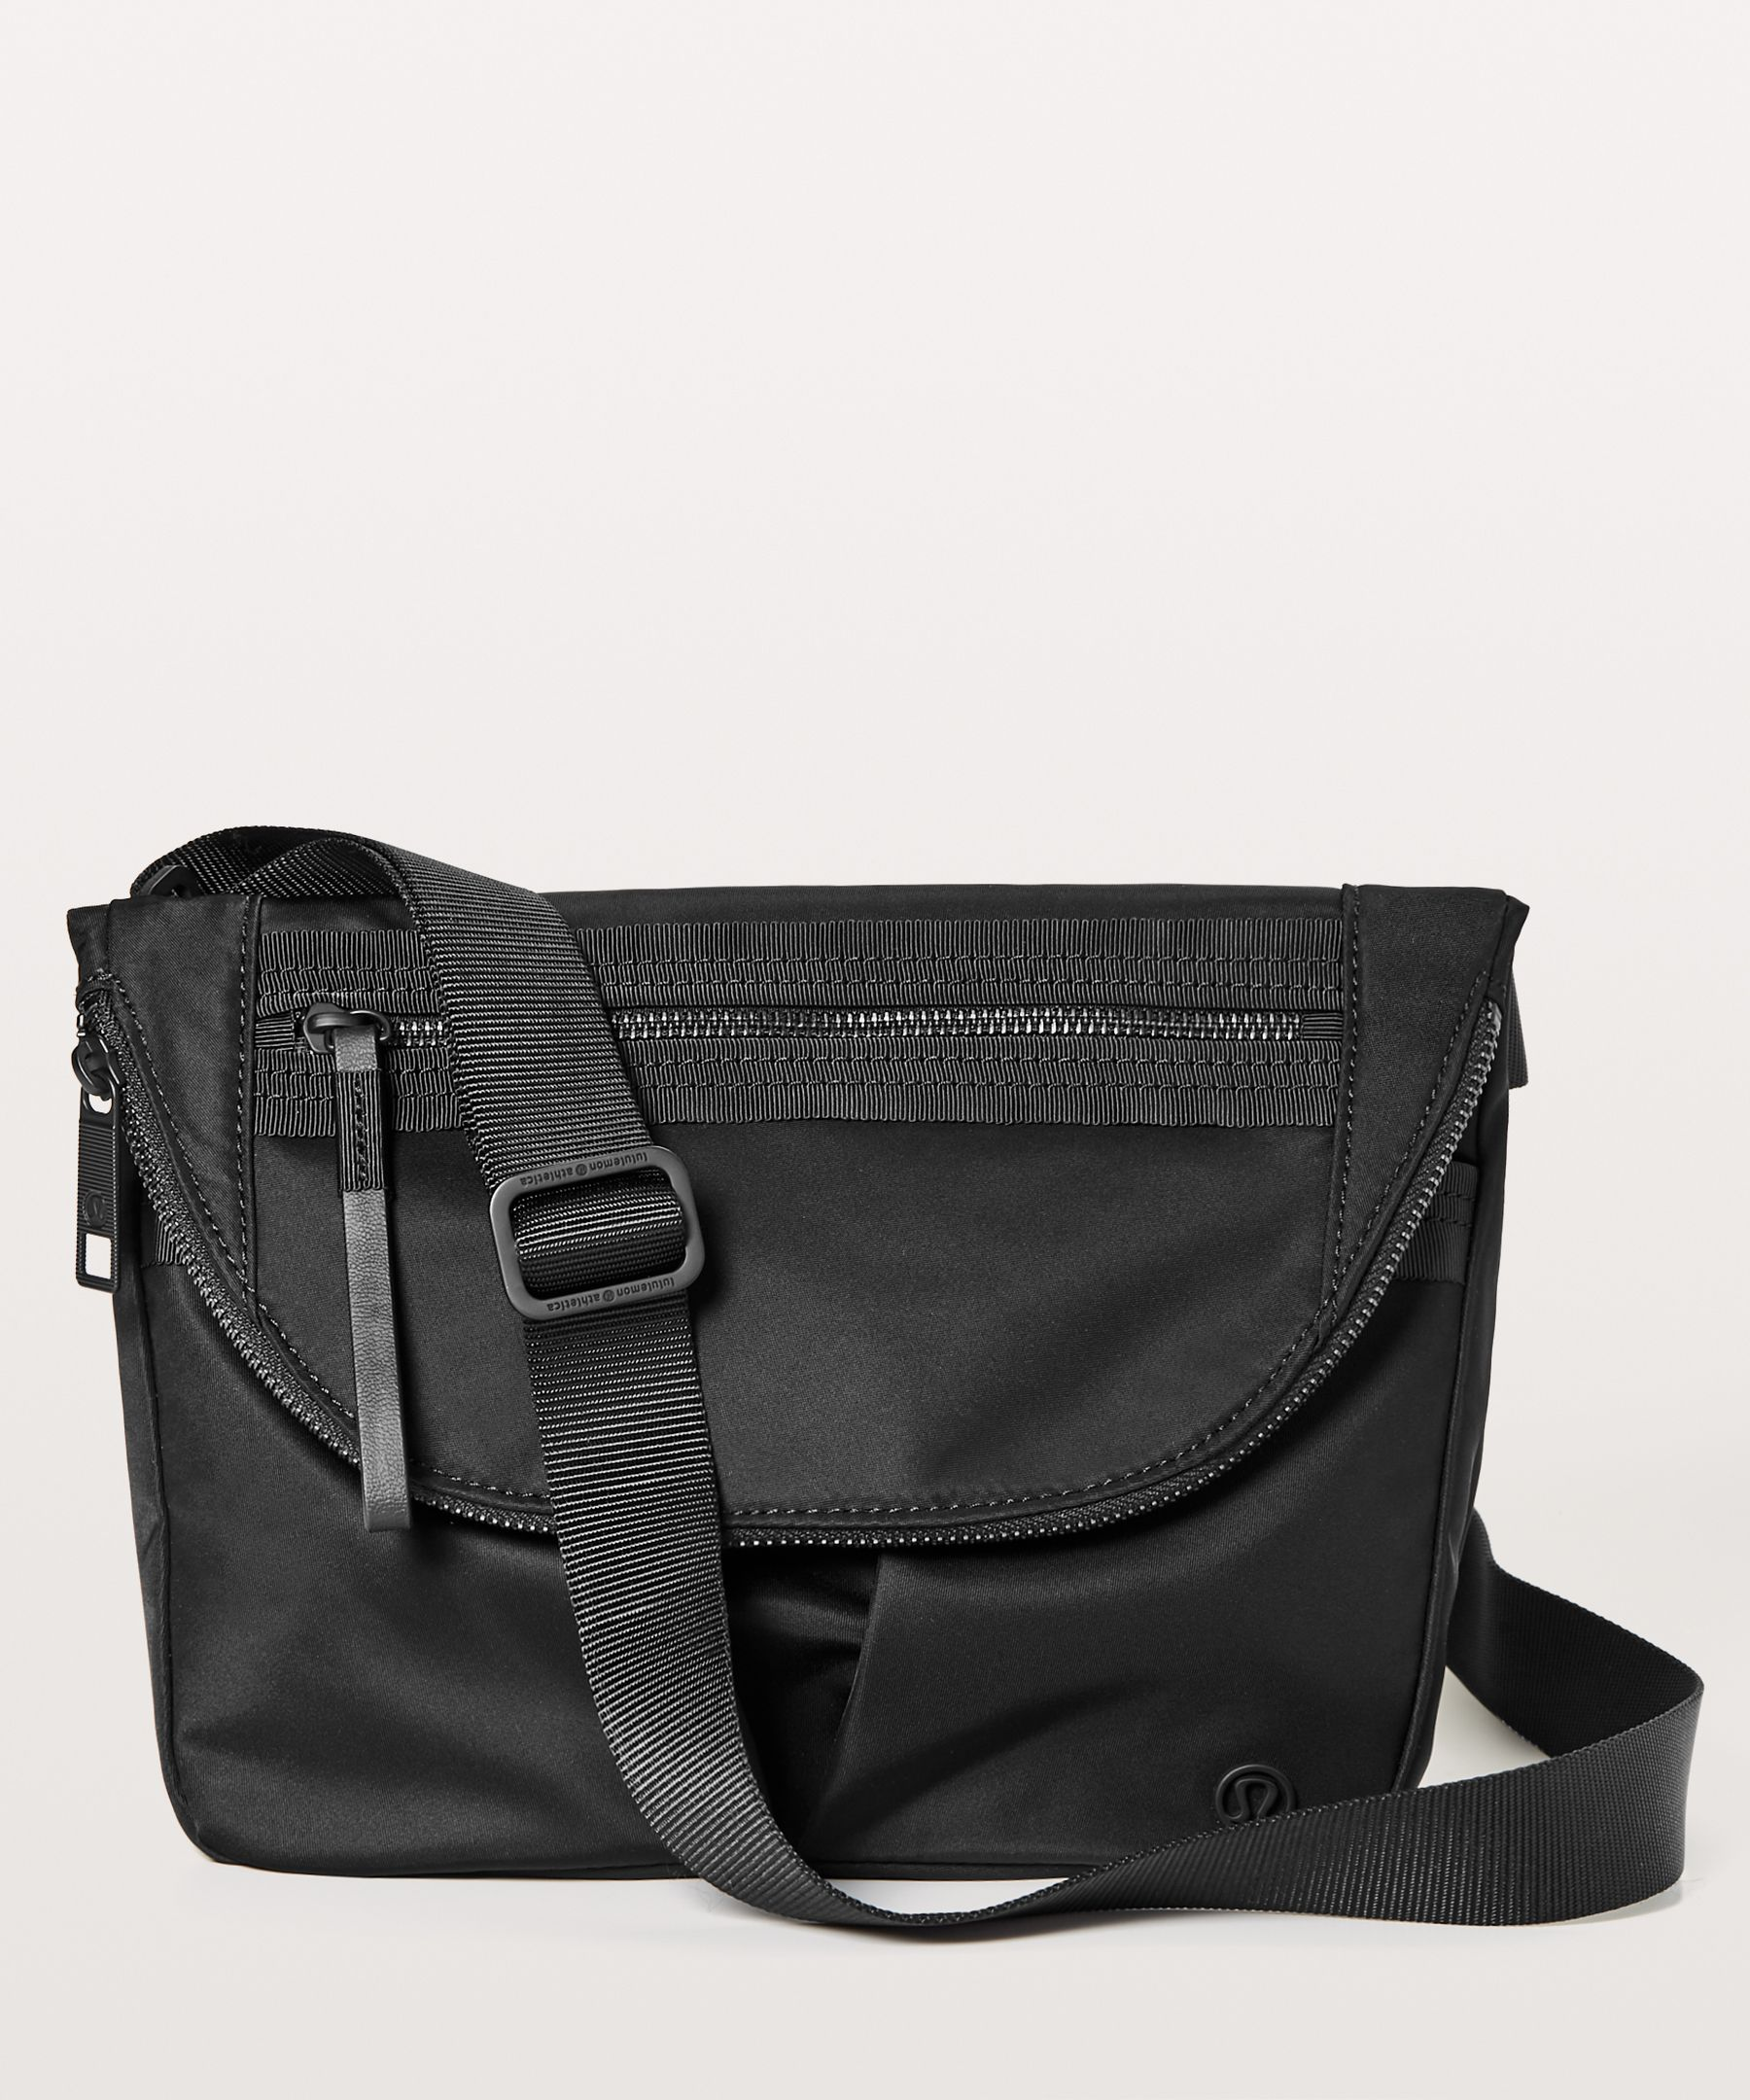 black Festival Bag II 5L